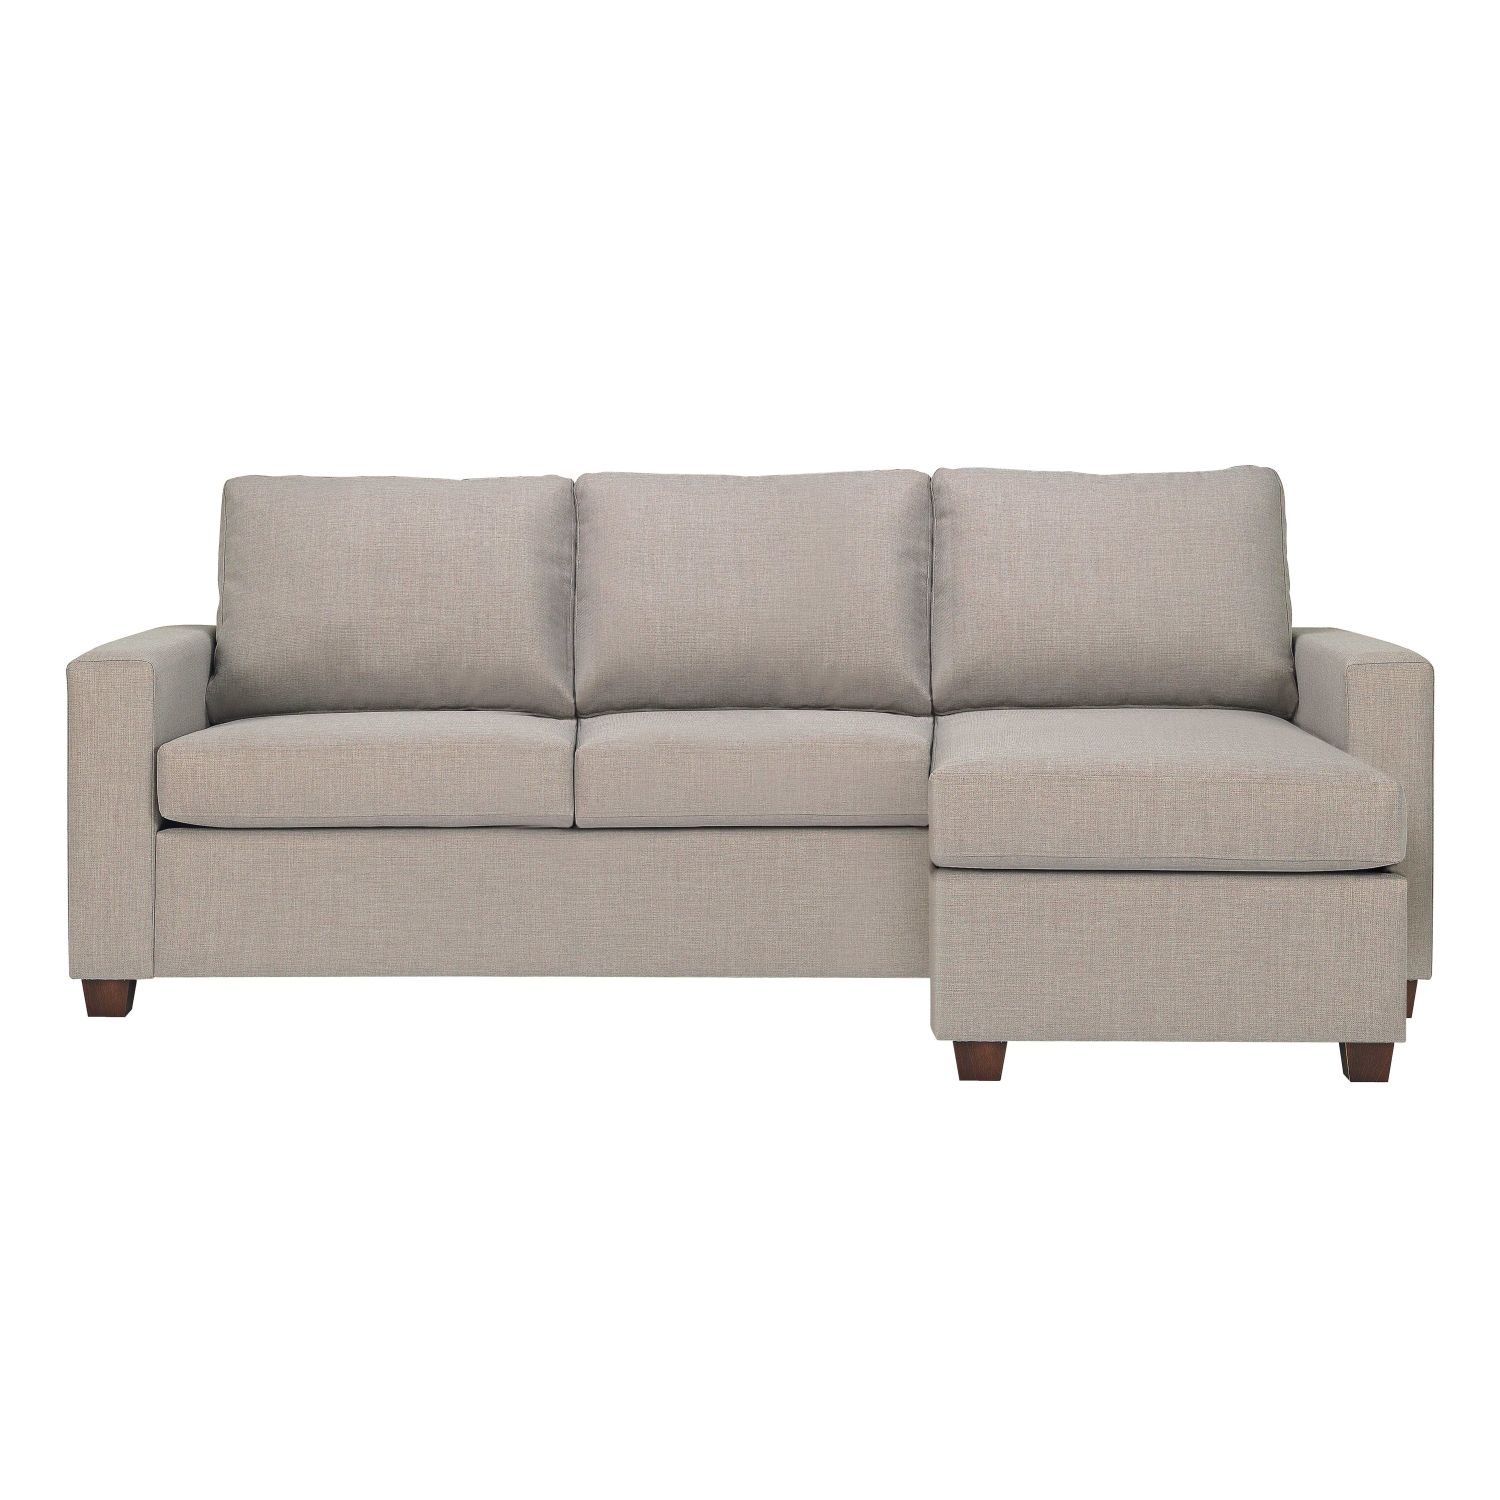 Domayne sofa beds newport 3 seater sofa bed with chaise for 5 seater sofa with chaise